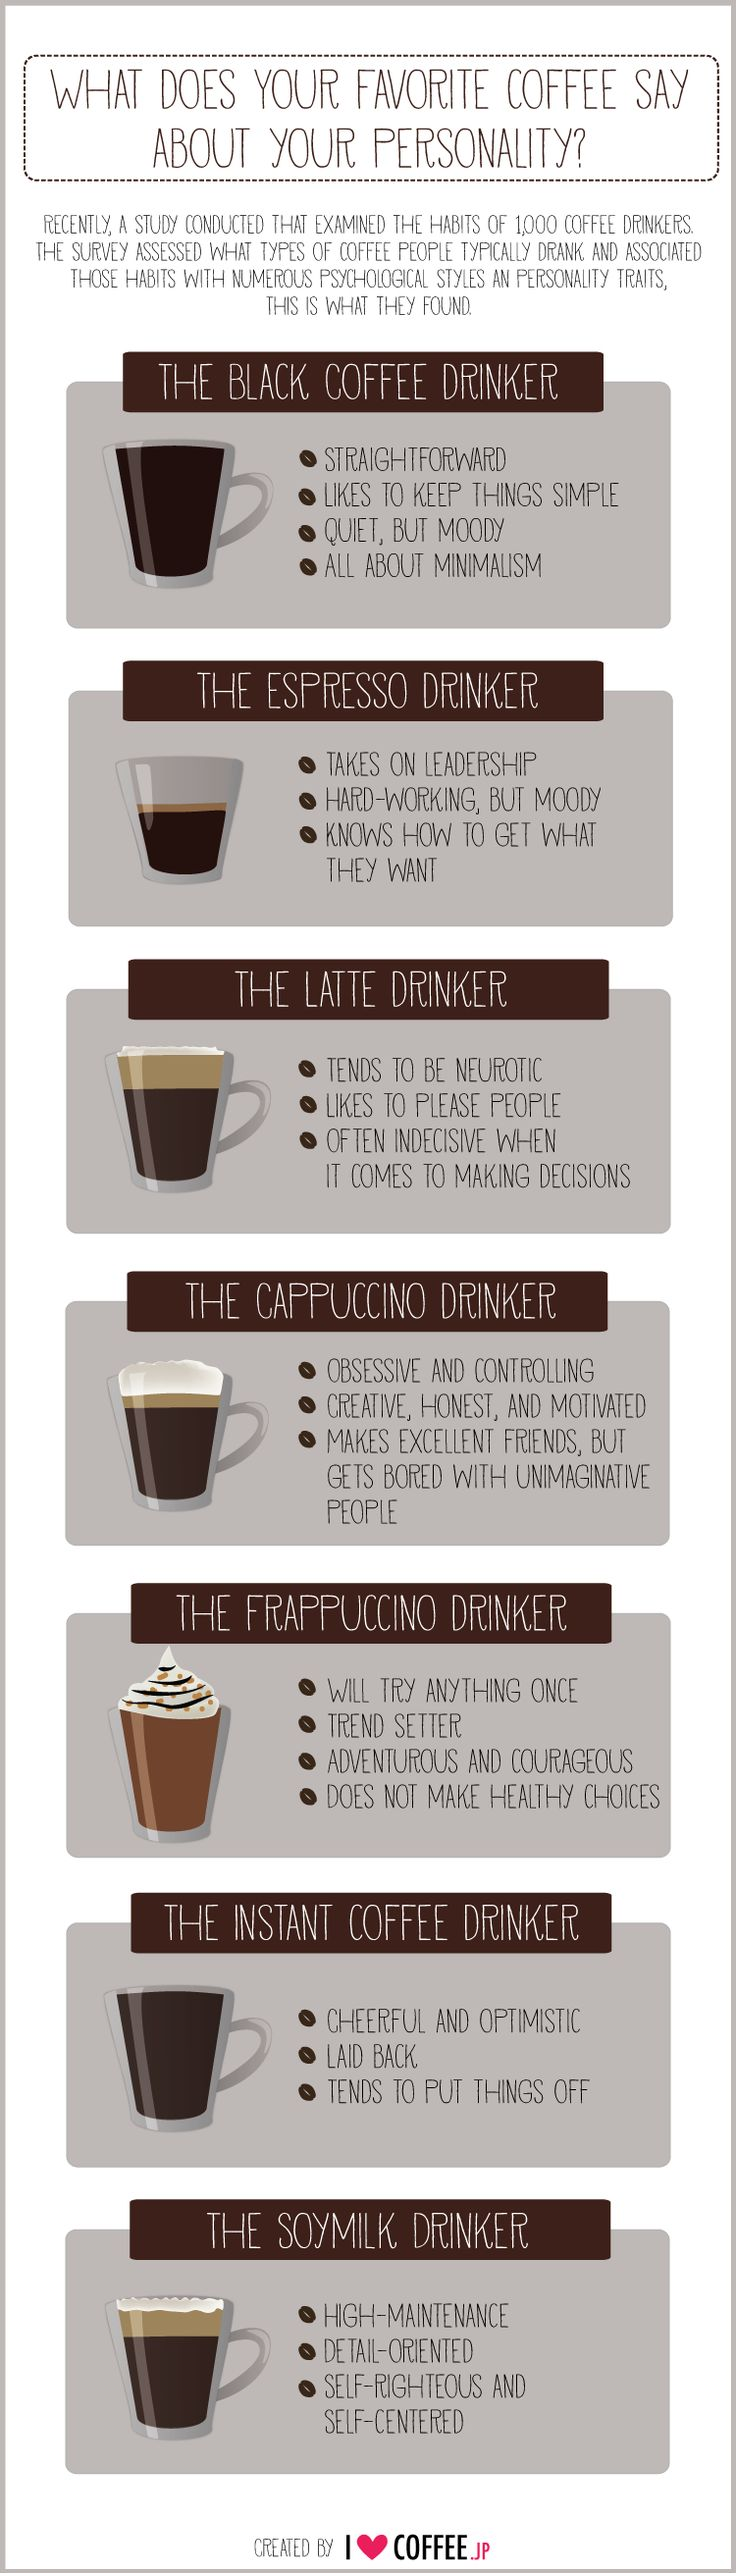 What does your favorite coffee say about your personality? I have no idea what I am :/